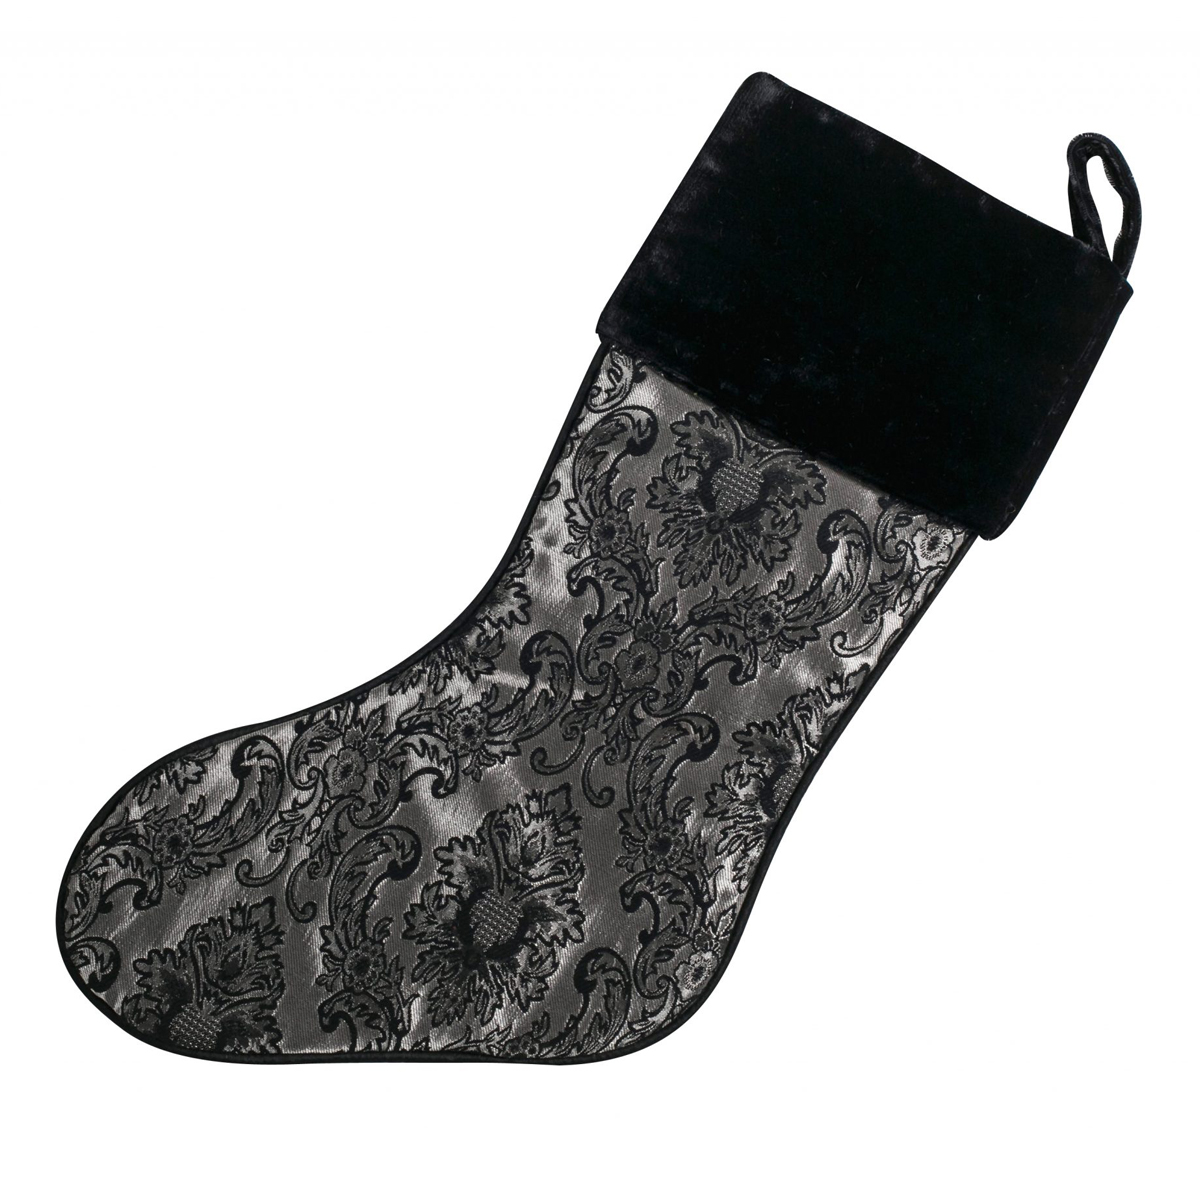 Damask Taj Mahal Stocking